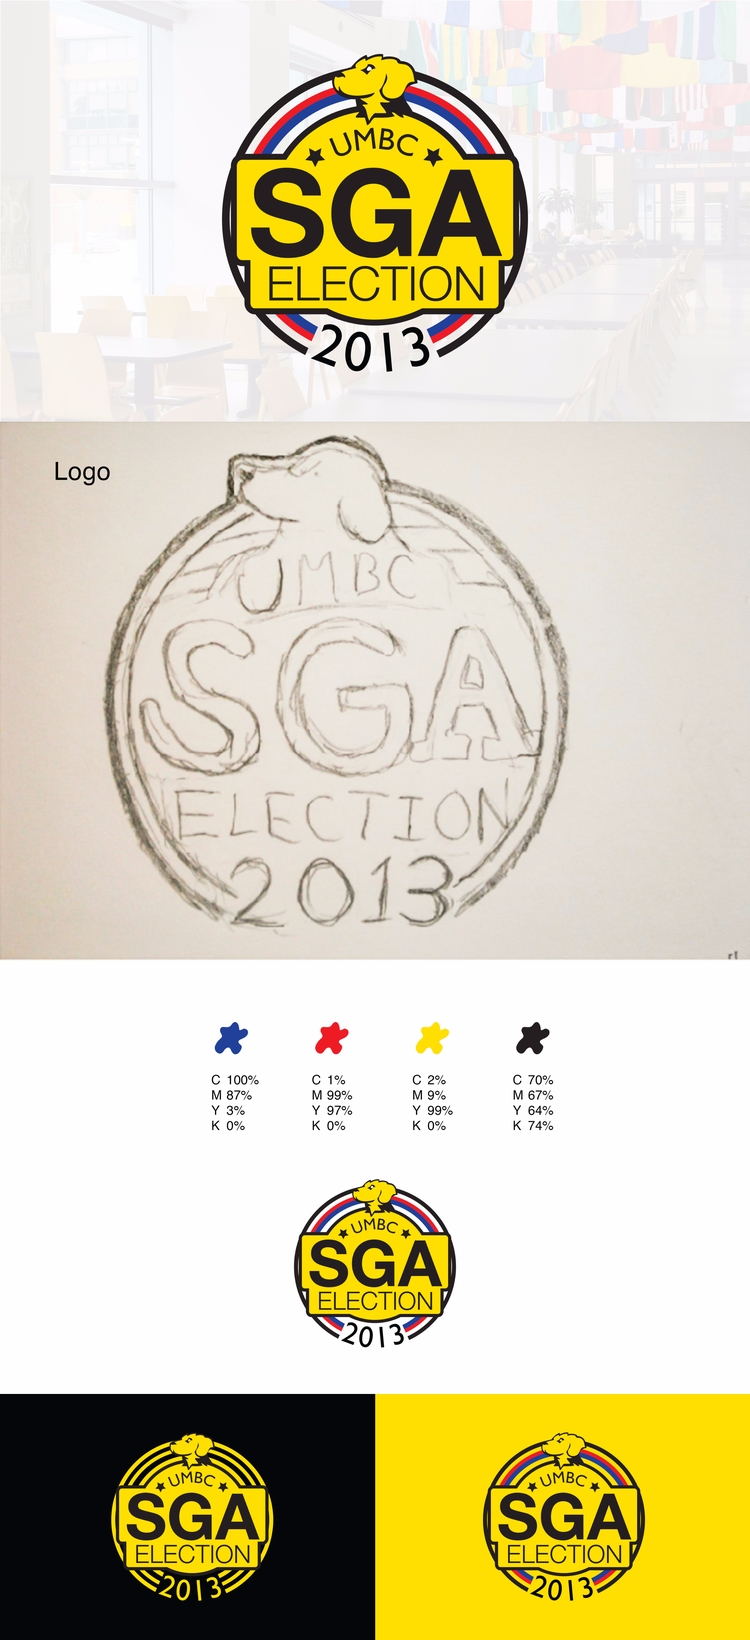 logo design UMBC SGA Election B - jaslee-3873 | ello